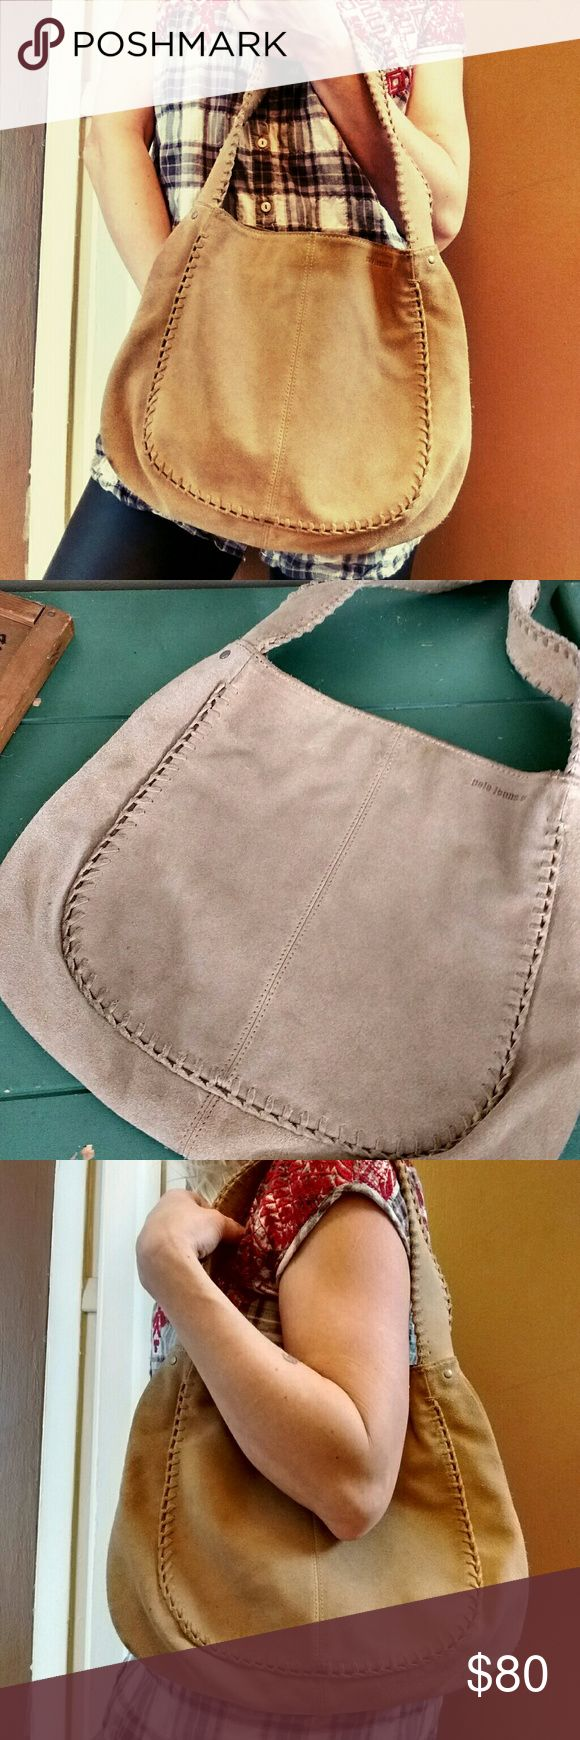 Polo Jeans Co. Ralph Lauren Suede Handbag, Nice!!! Gorgeous Genuine Suede Leather Equestrian Saddlebag Purse / Shoulder Bag by Ralph Lauren Polo Jeans Co. In Excellent Condition!  Perfect Interior!  From a Smoke and Pet Free Closet. Polo by Ralph Lauren Bags Shoulder Bags